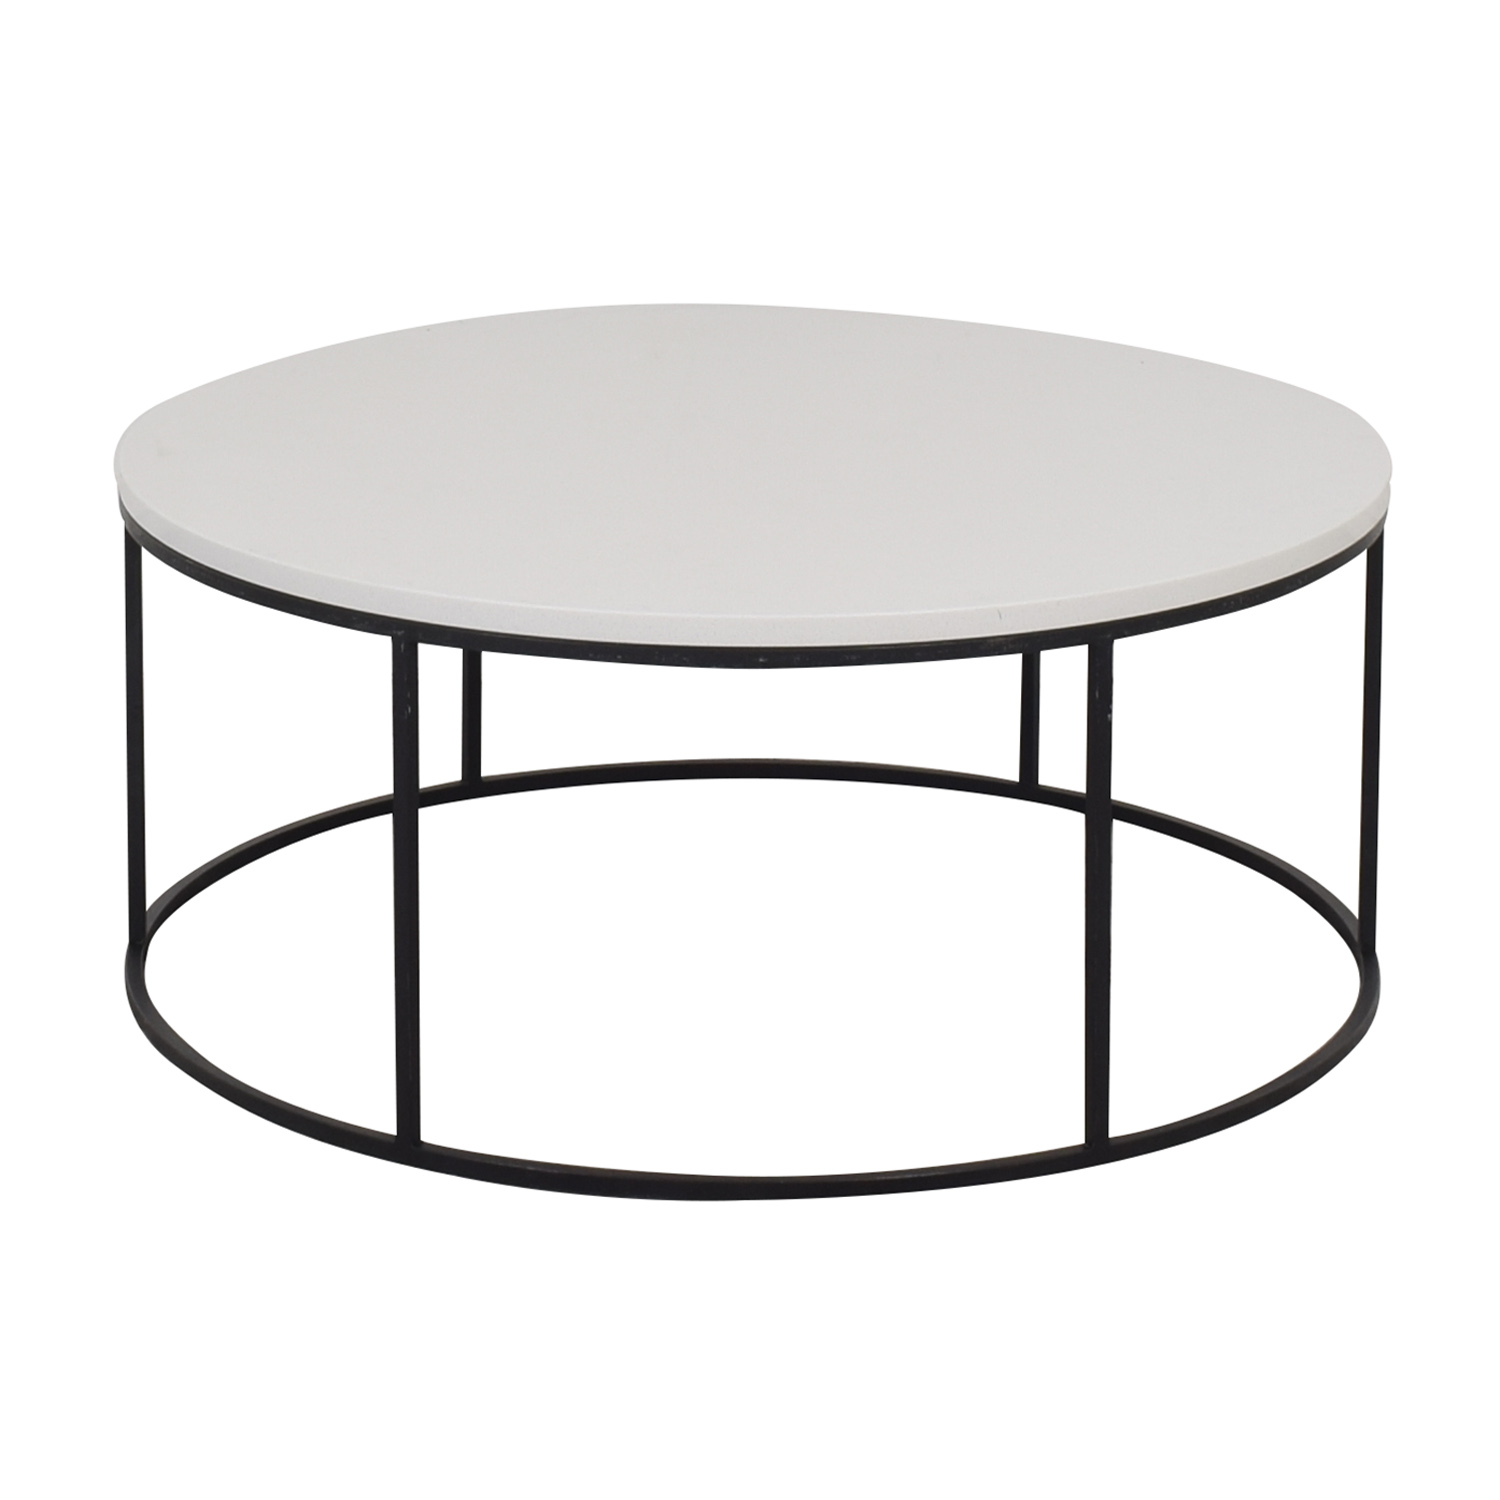 West Elm West Elm Streamline Round Coffee Table coupon